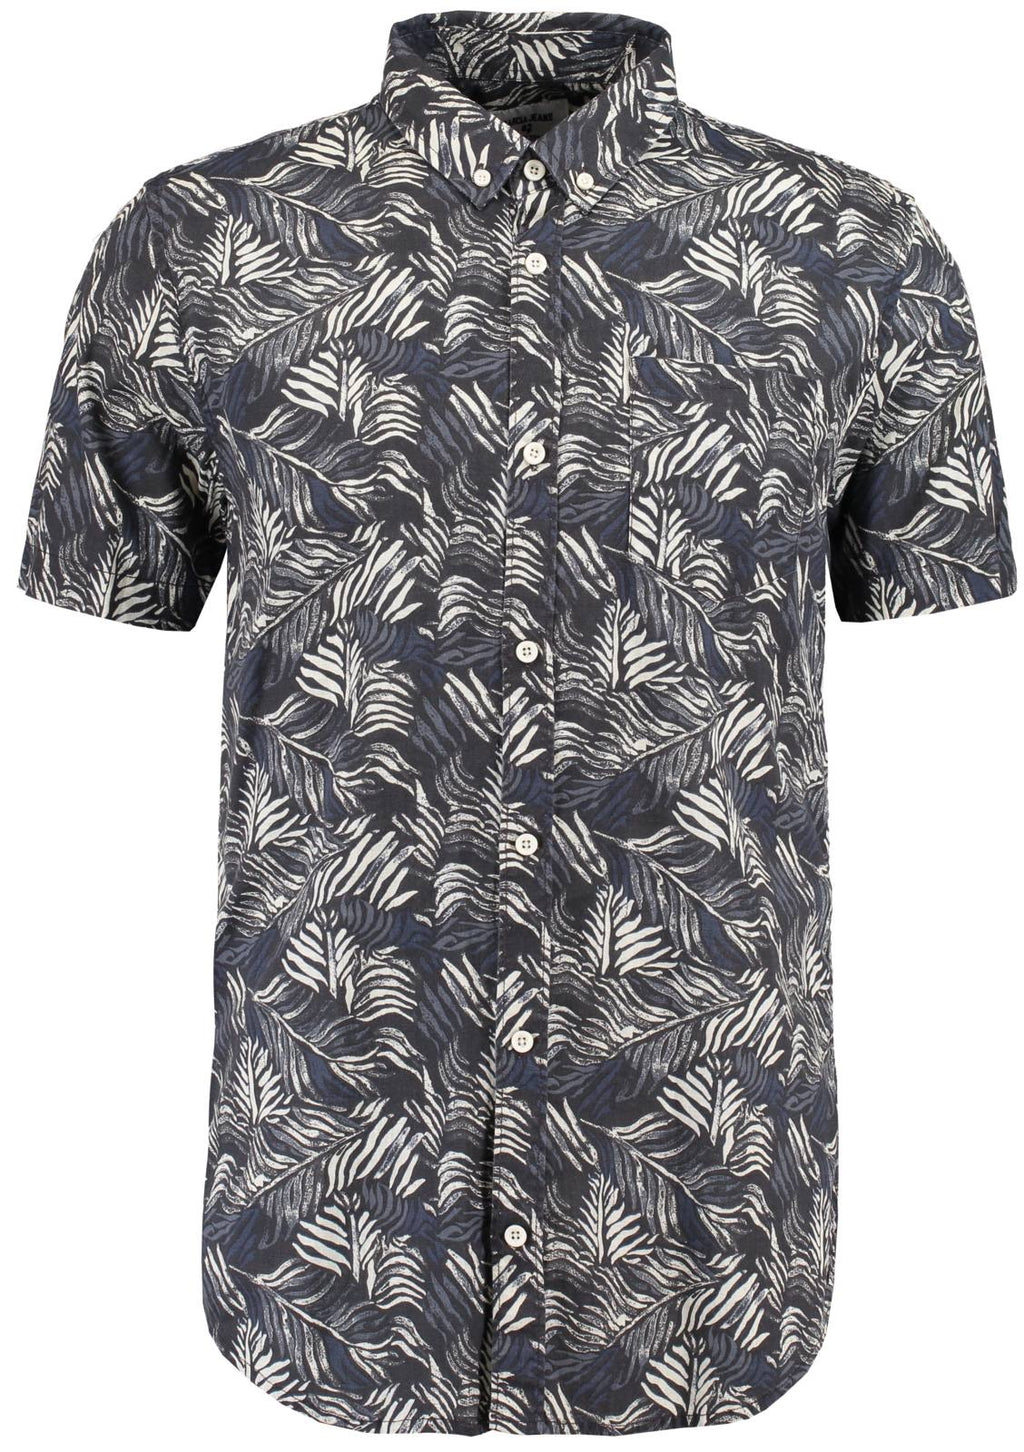 Garcia Dark Moon Short Sleeve Shirt - LAST ONE!